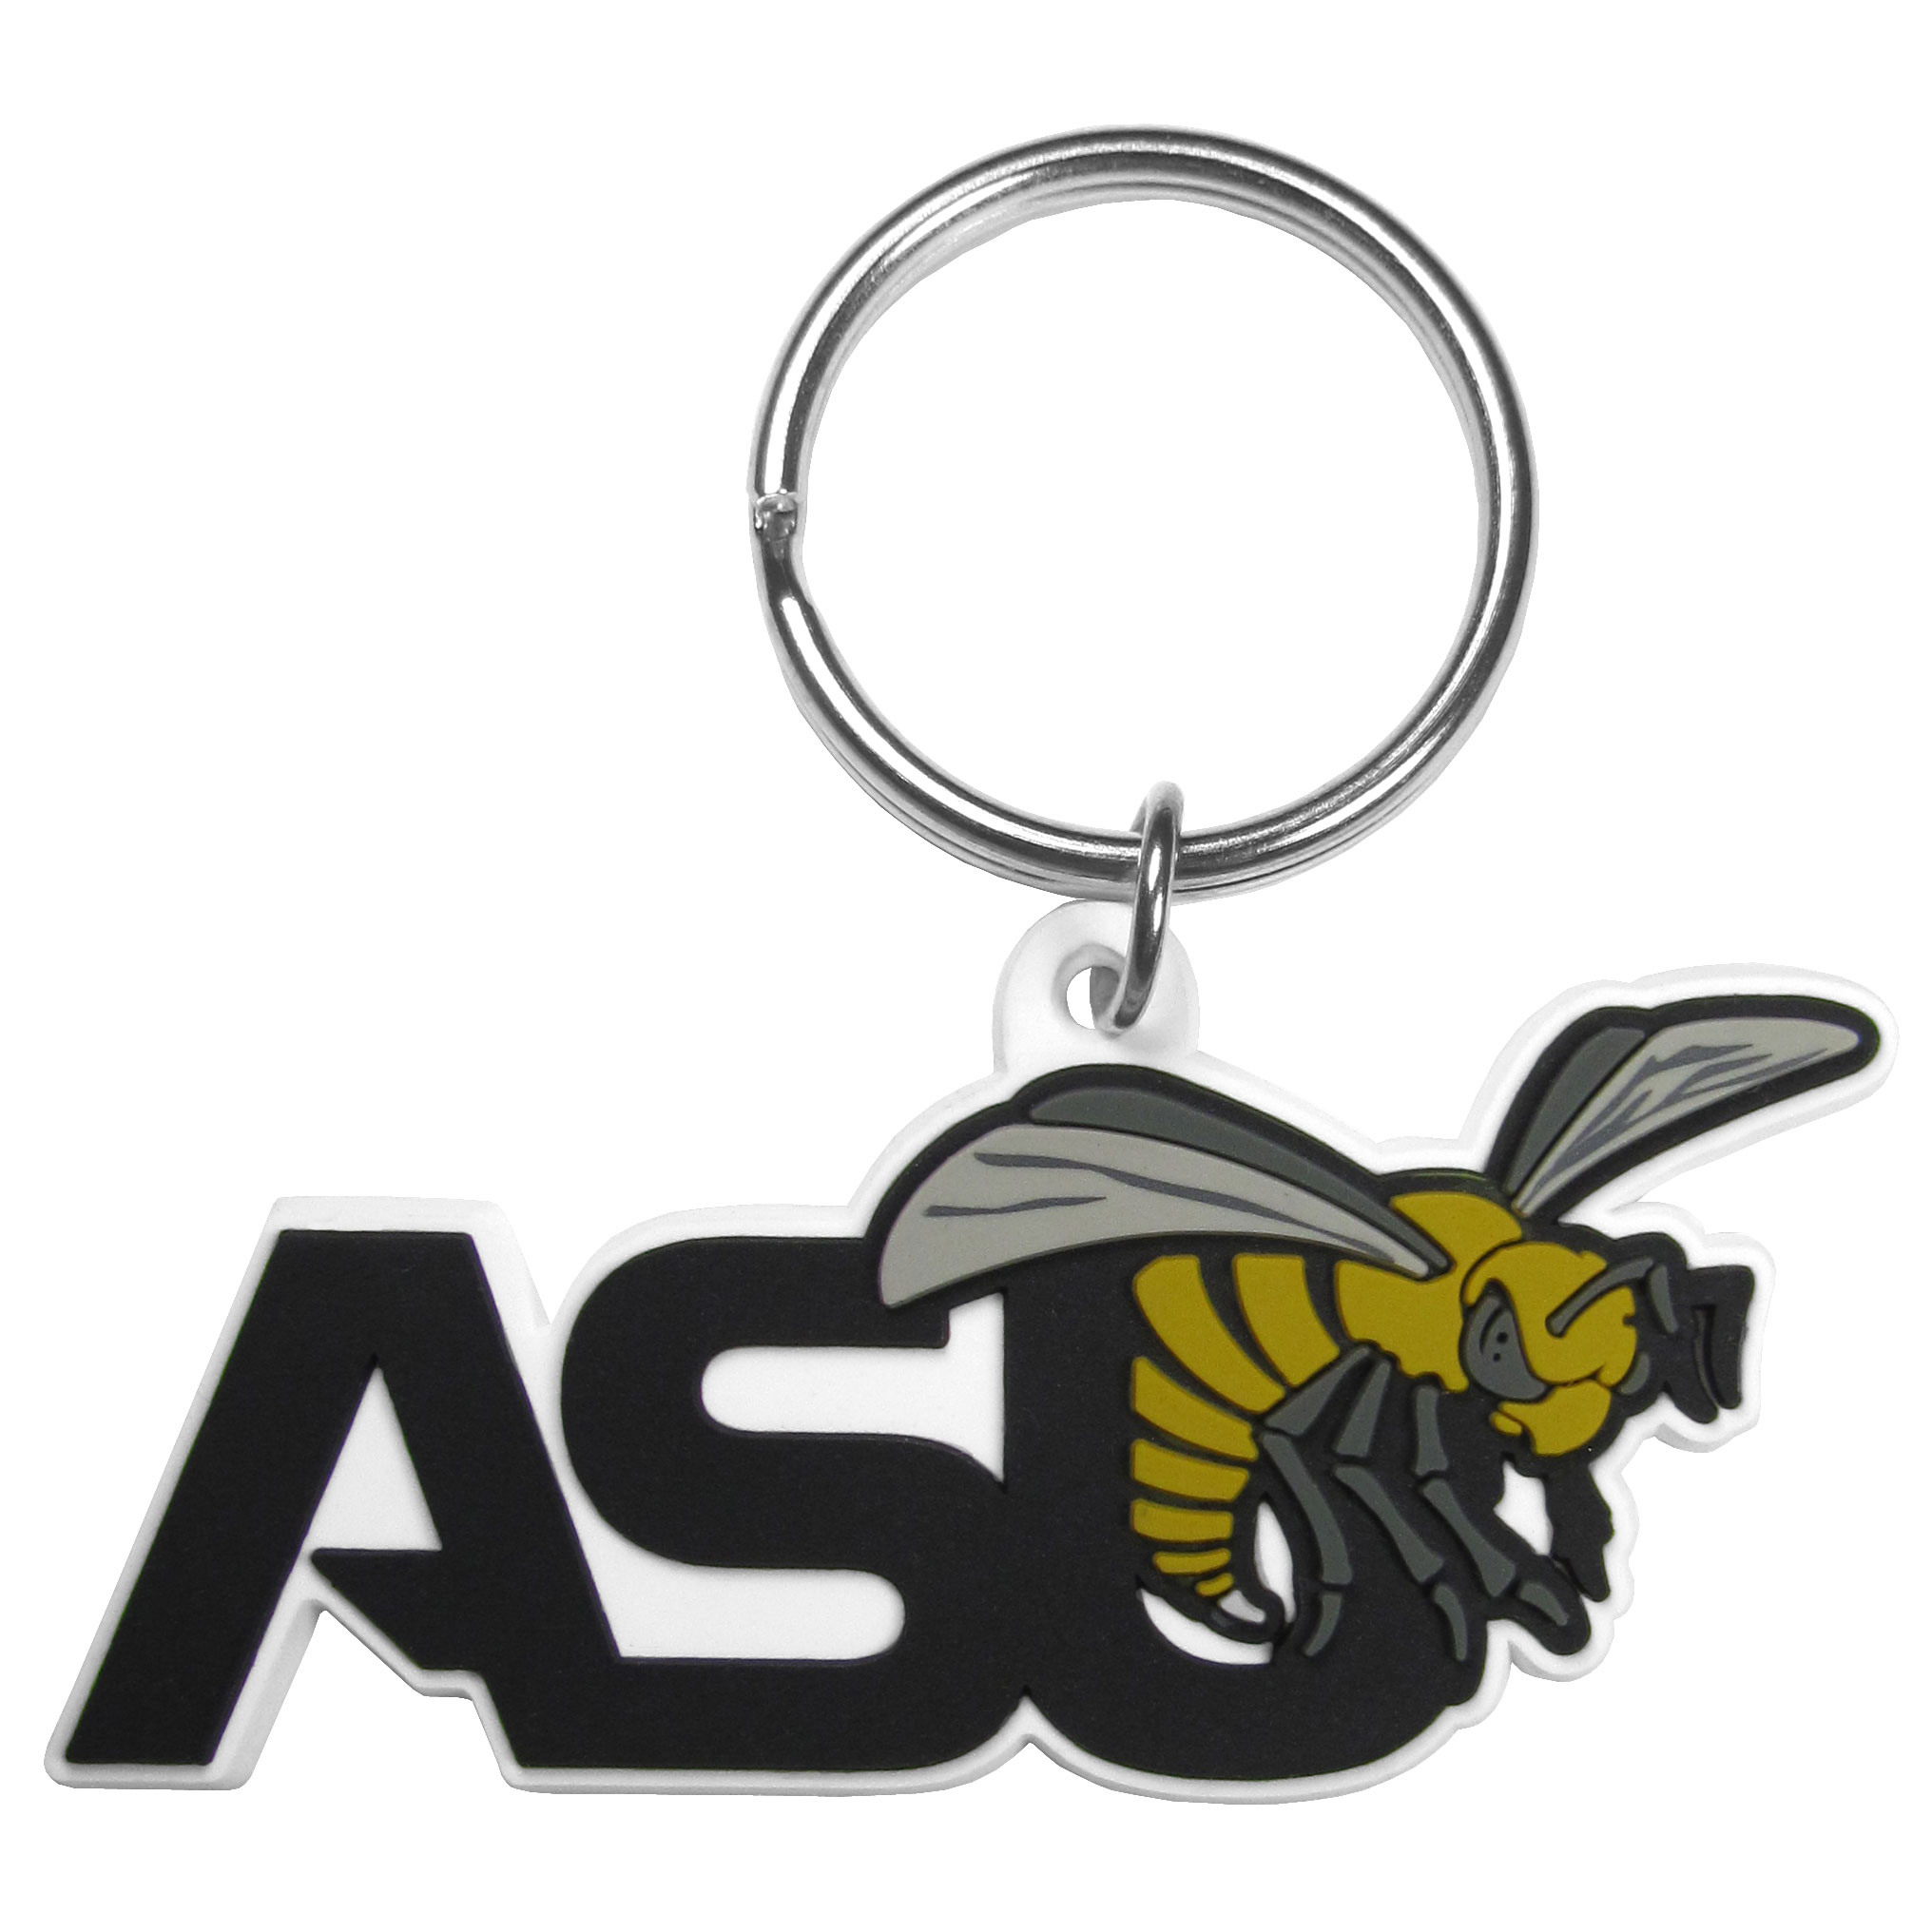 Alabama St. Hornets Flex Key Chain - Our fun, flexible Alabama St. Hornets key chains are made of a rubbery material that is layered to create a bright, textured logo.